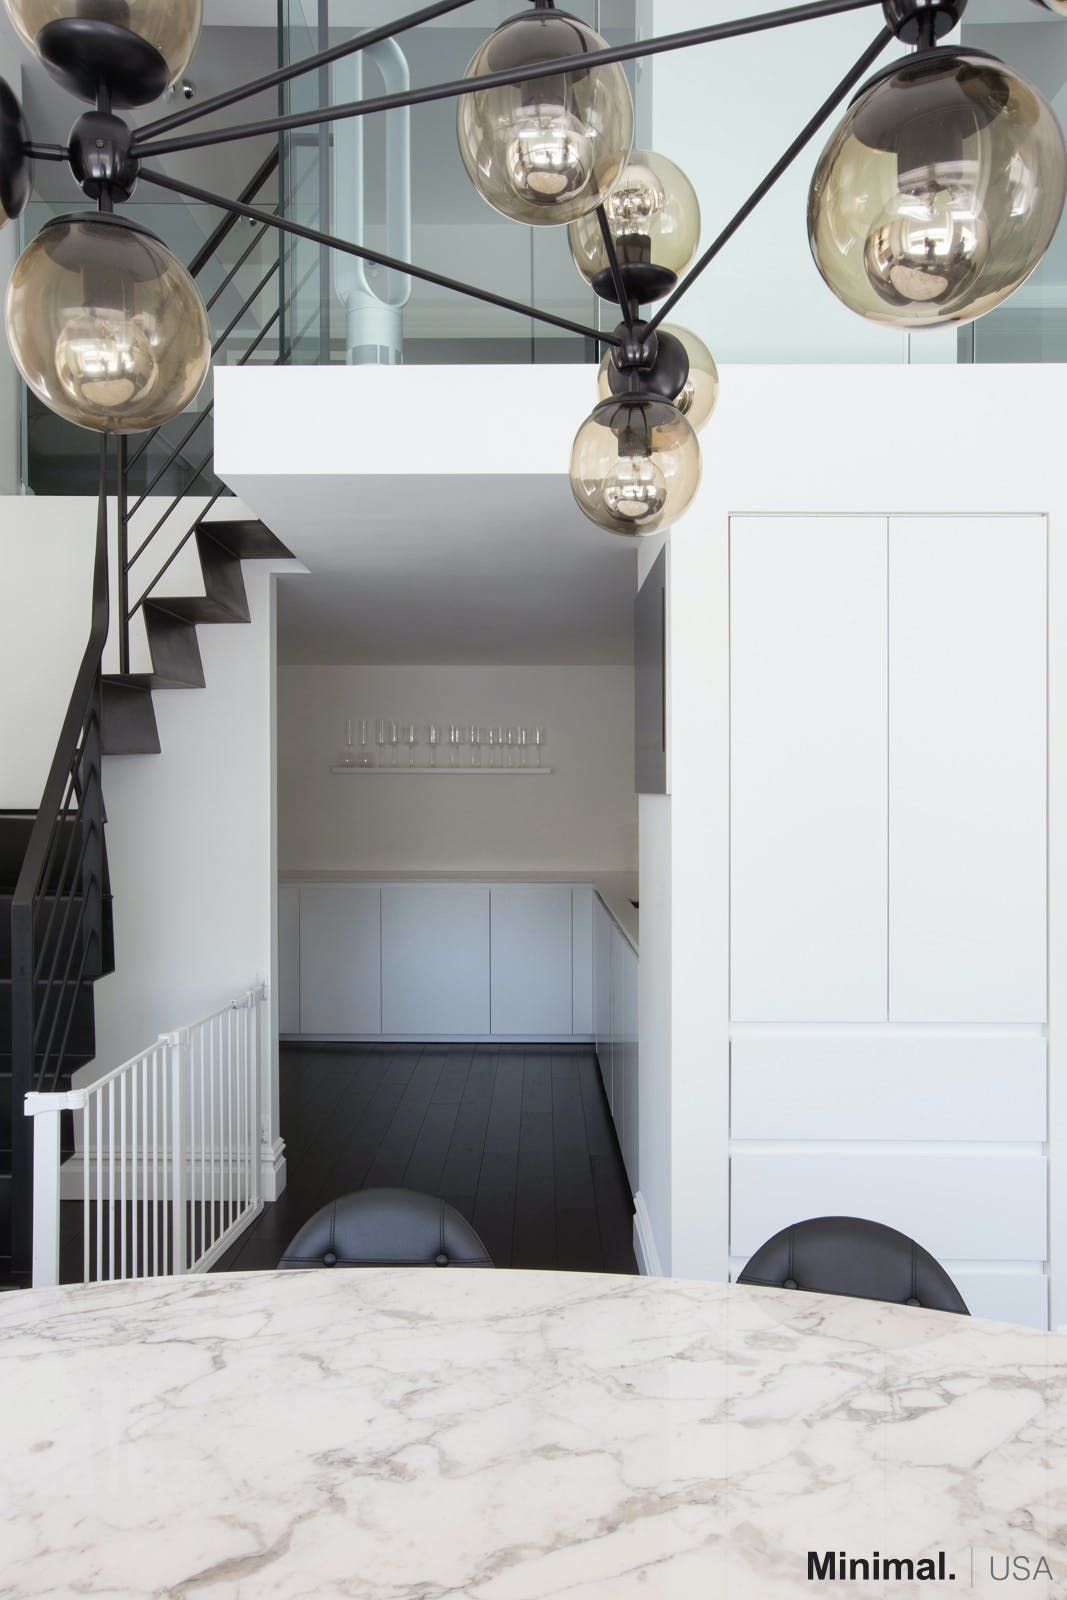 Moving to the left  passing the modern living room  there is the kitchen s  entrance. Upper East Side Luxury Apartment   Minimal USA   Archinect